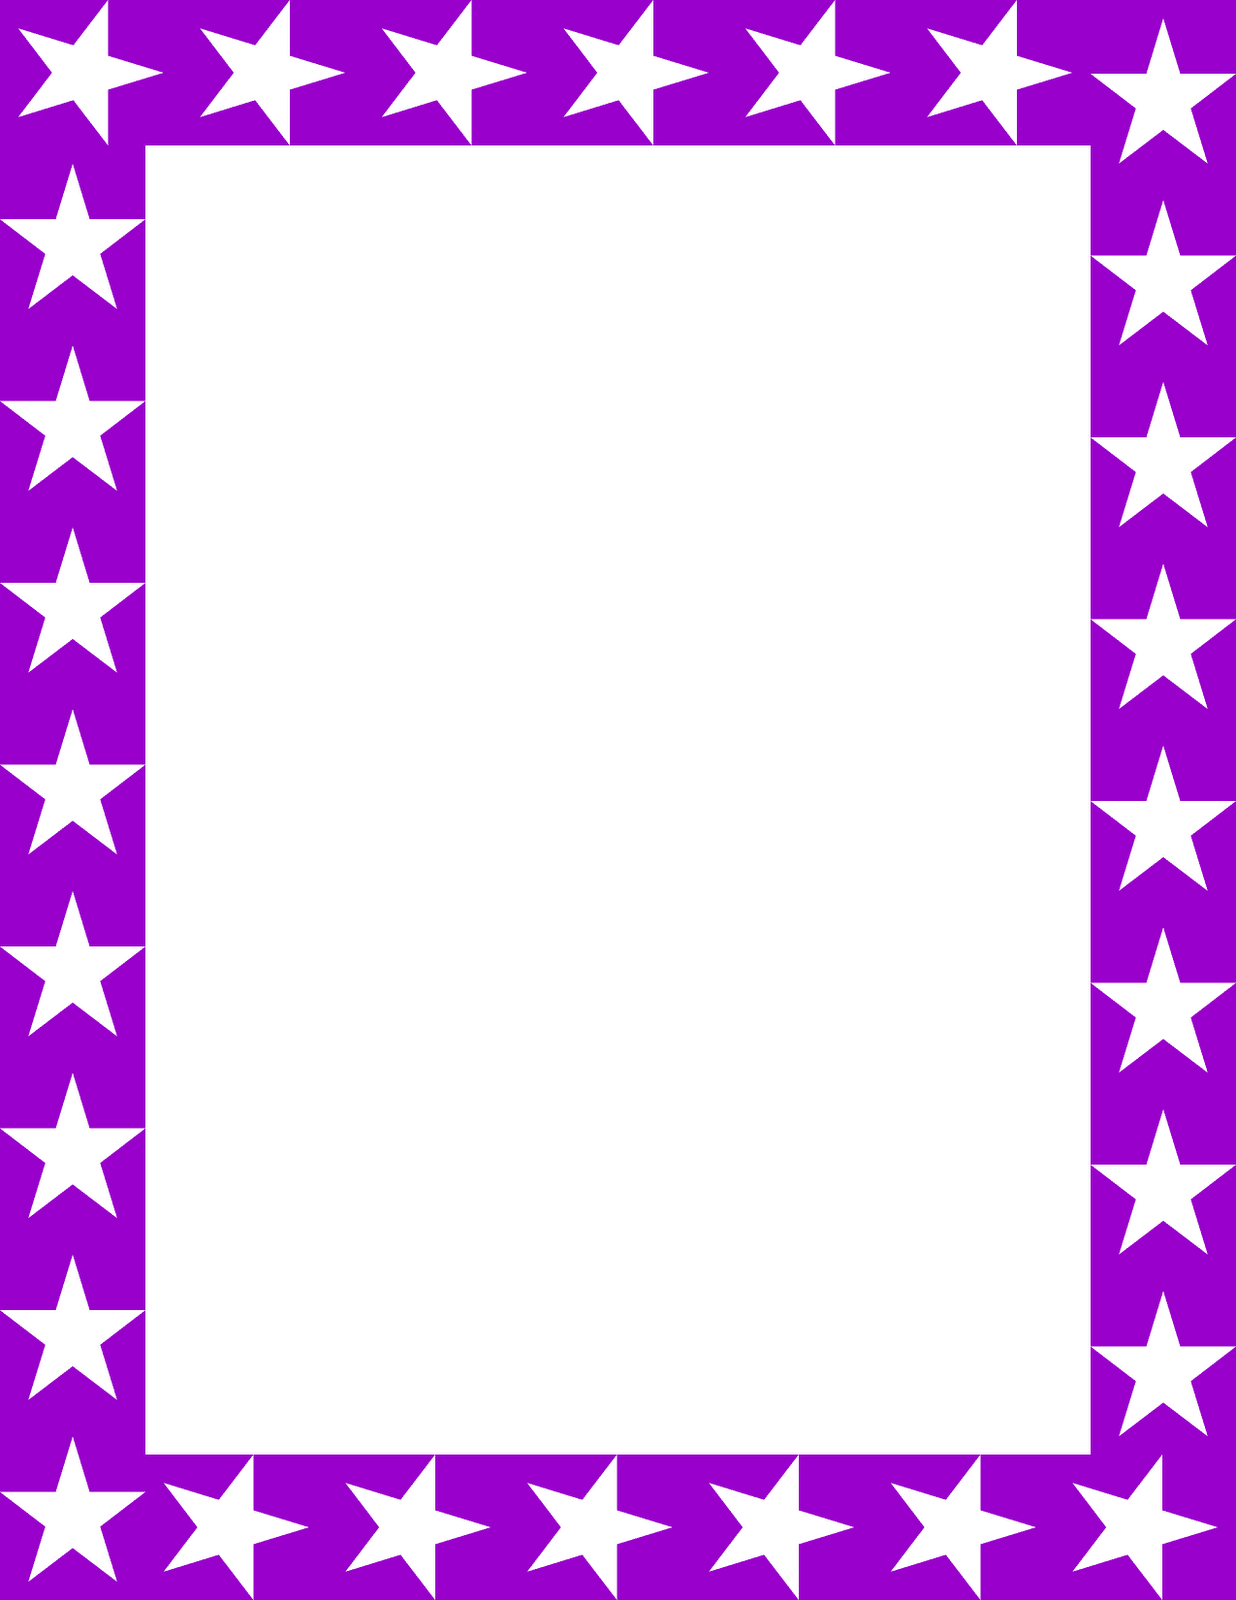 Stars Borders And Frames Images u0026 Pictures - Becuo